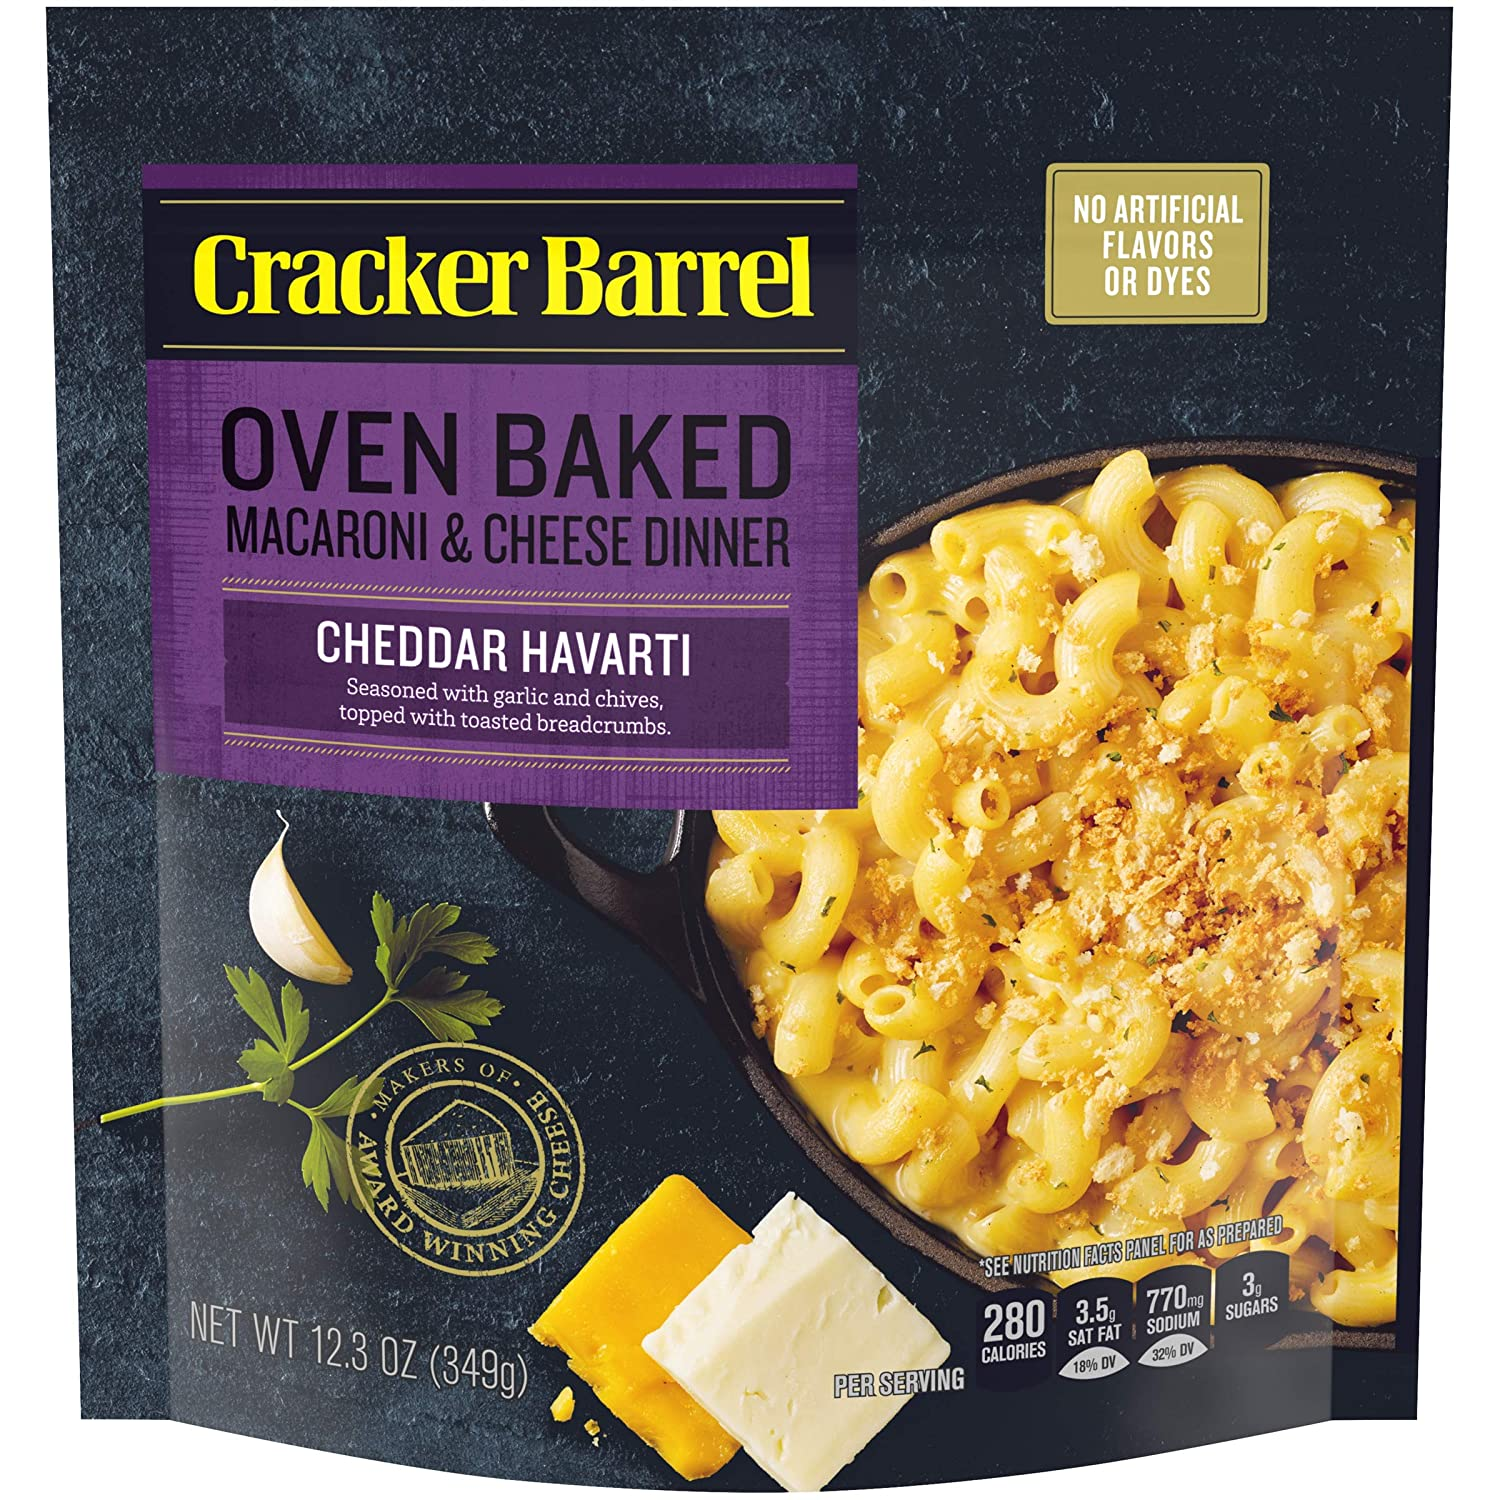 Cracker Barrel Oven Baked Havarti Macaroni and Cheese Dinner, 12.3 oz Pouch